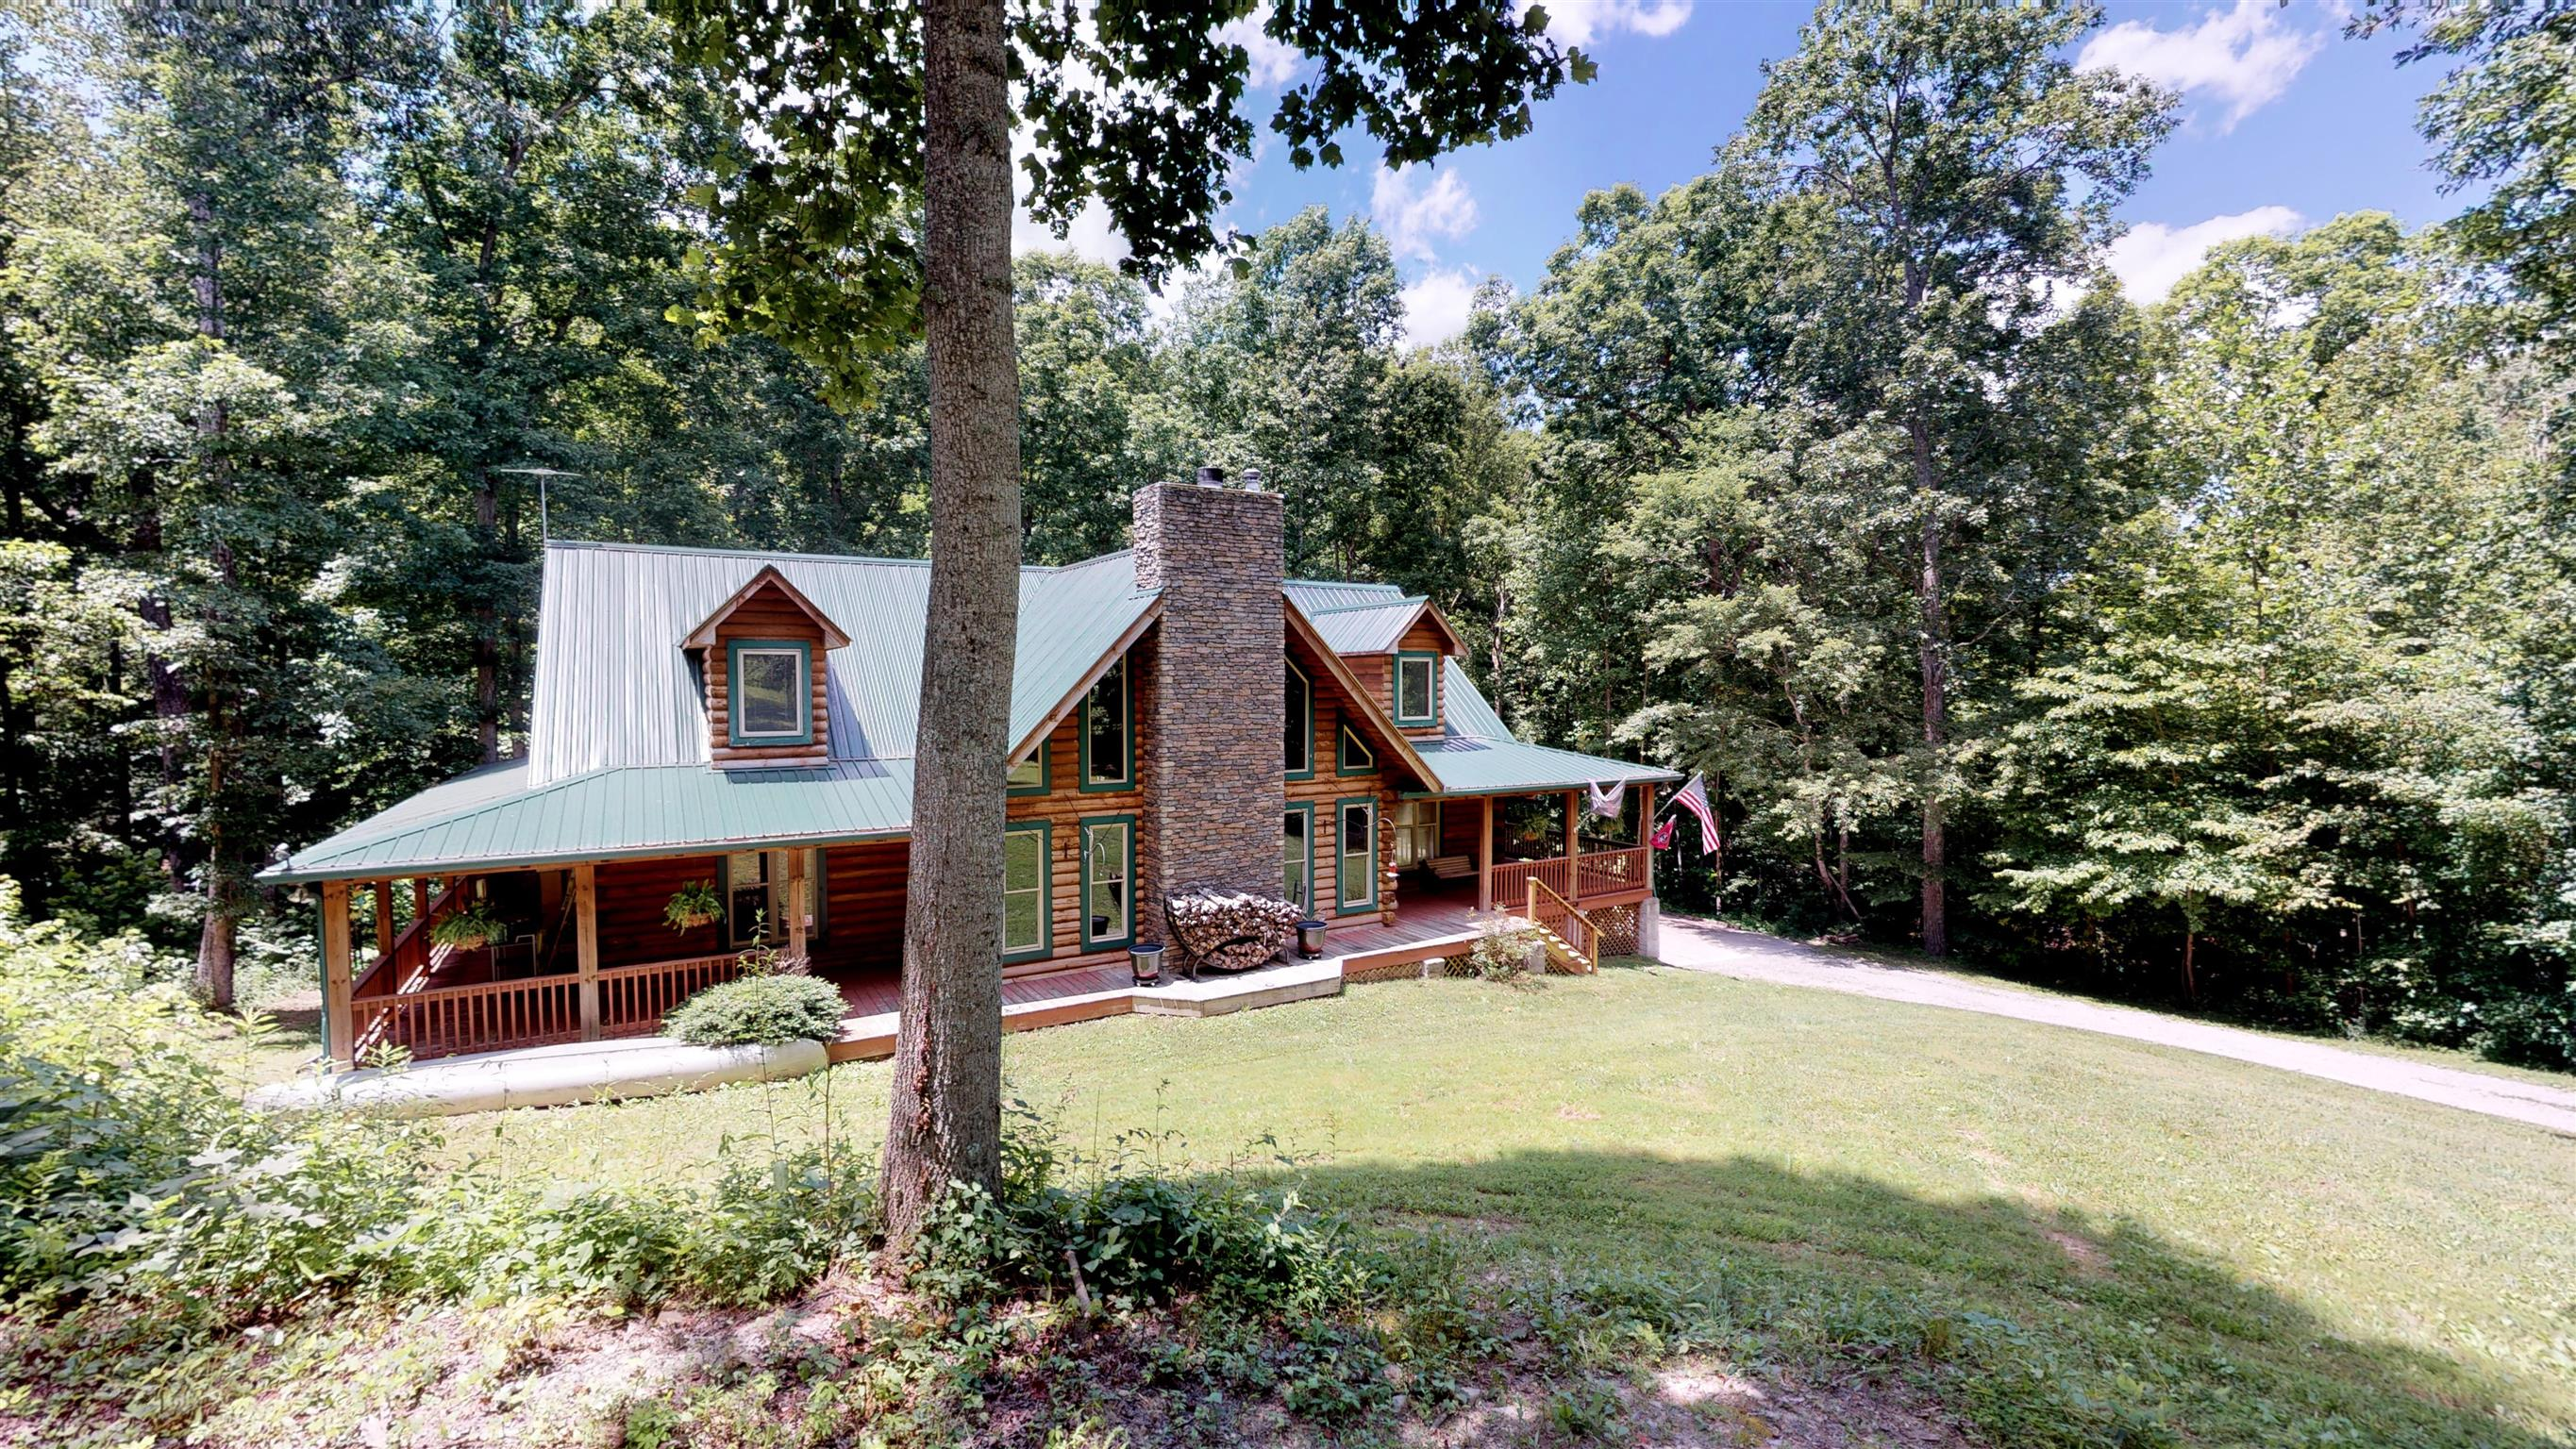 7117 Haskell School Rd, Fairview, TN 37062 - Fairview, TN real estate listing